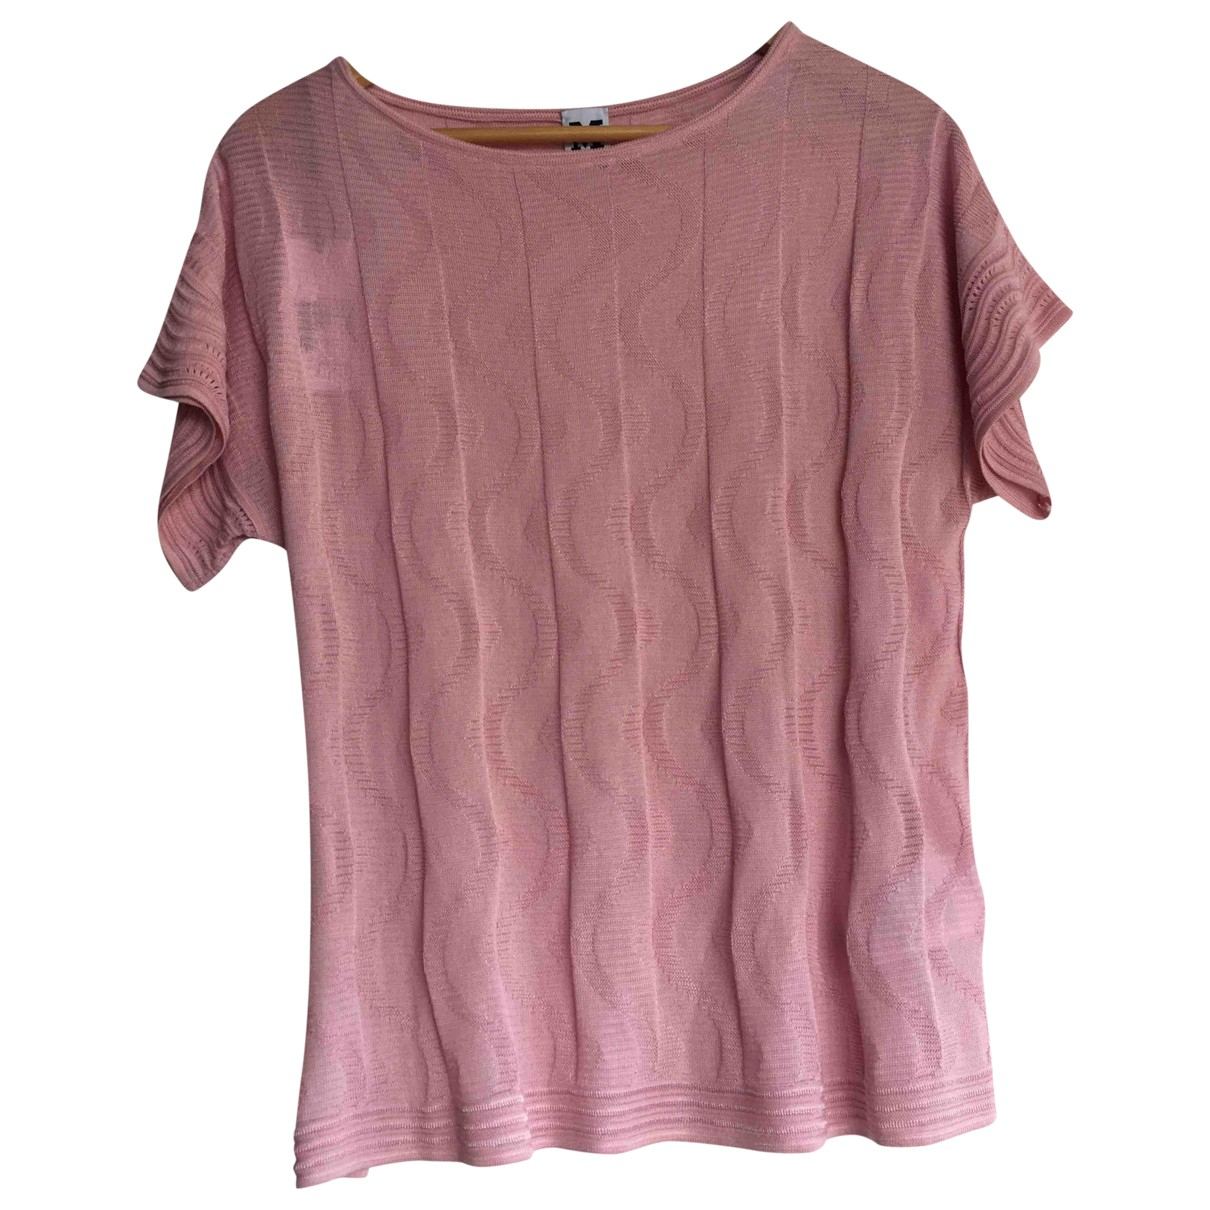 M Missoni \N Pink Cotton  top for Women 46 IT